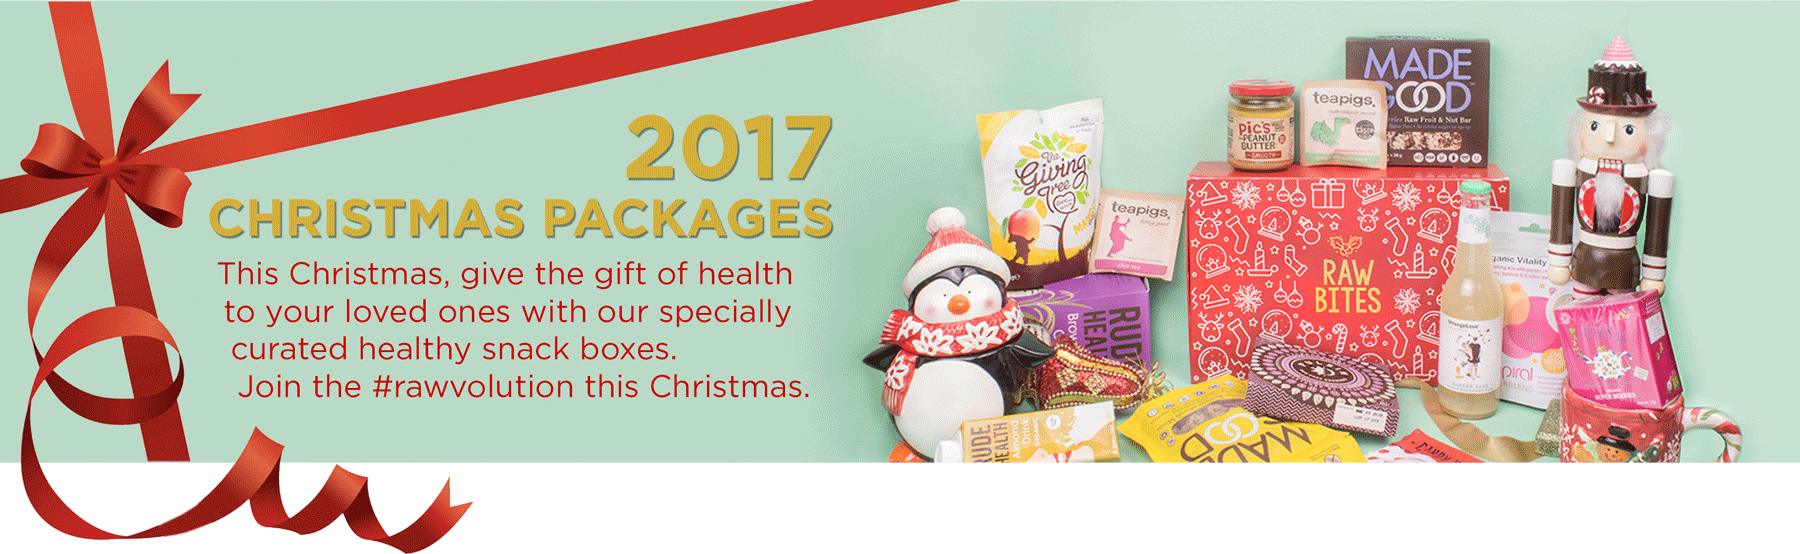 Raw Bites 2017 Christmas packages